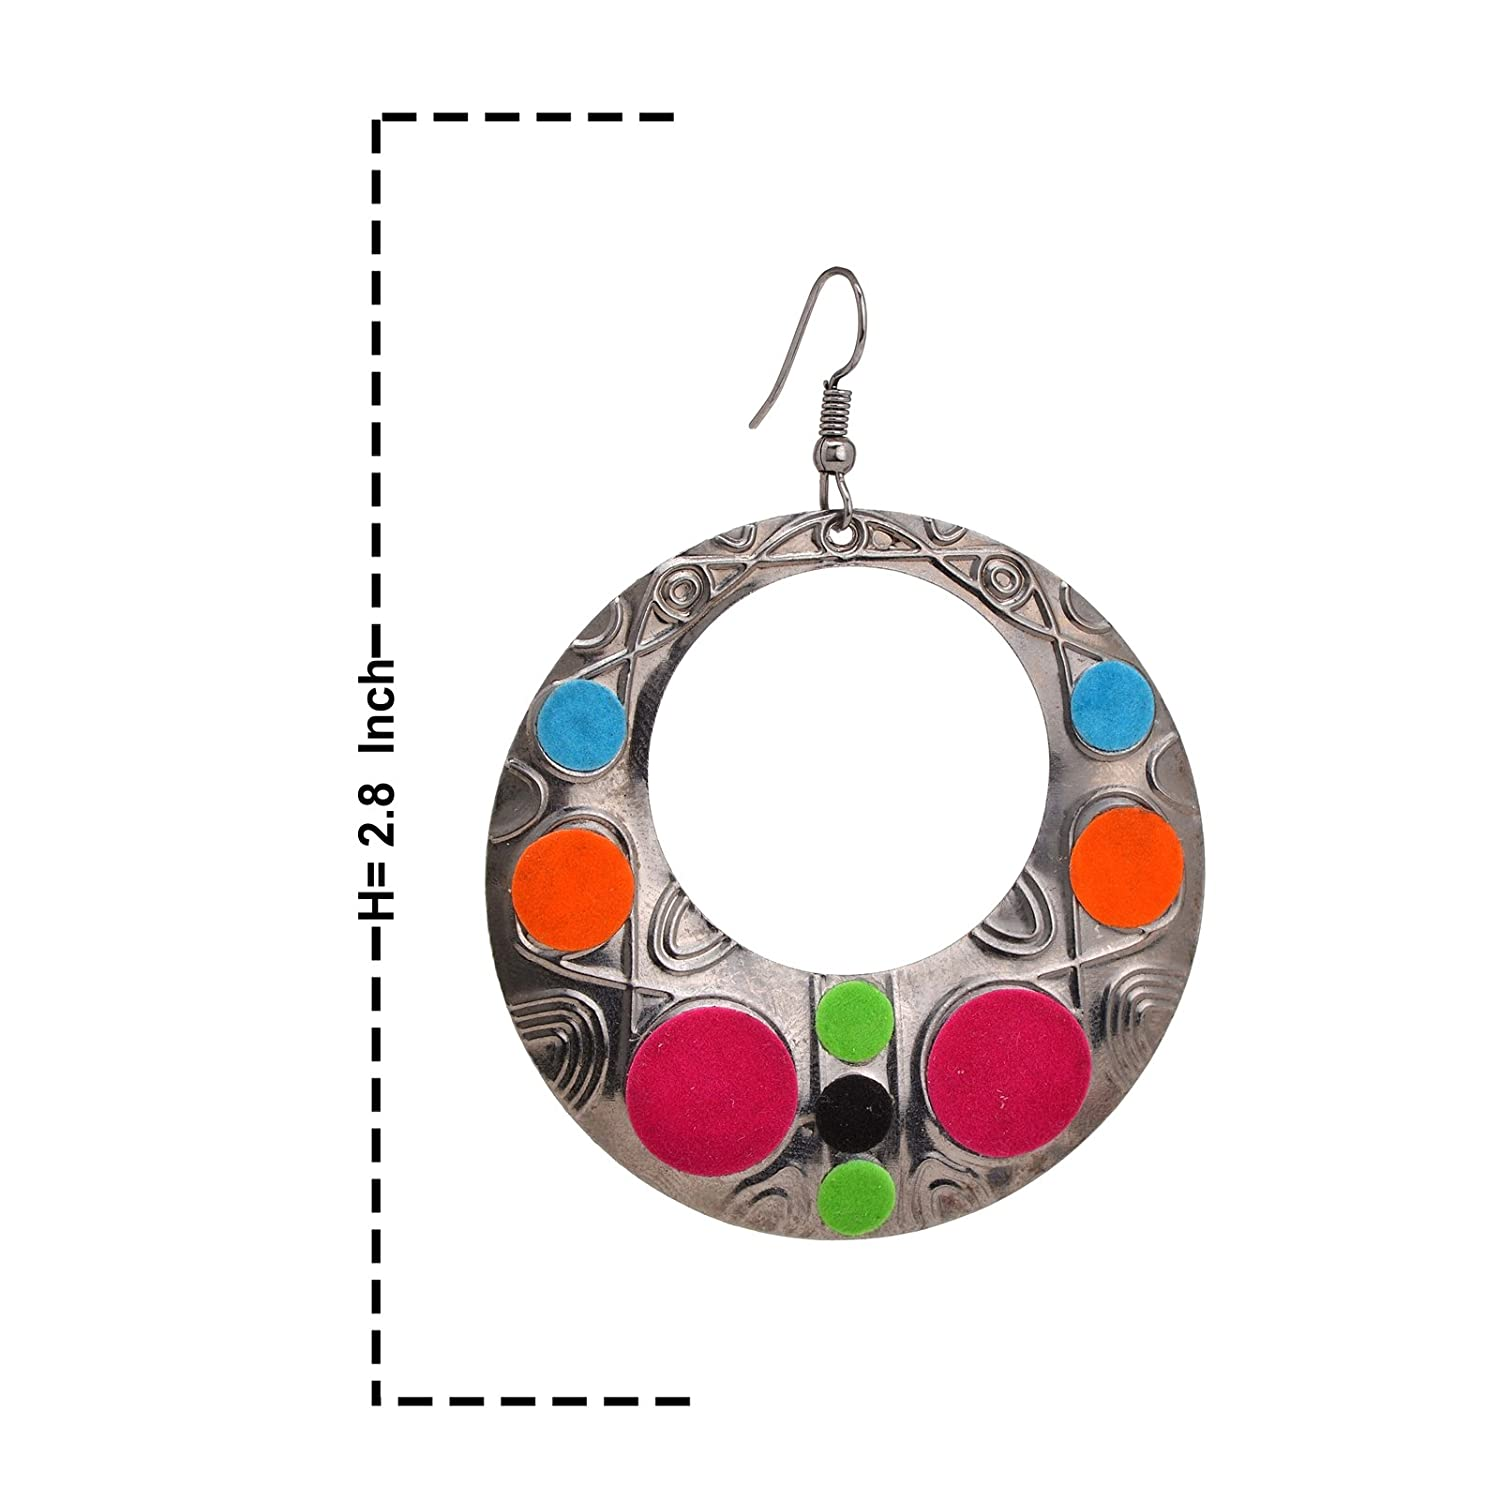 Oreleaa Earrings Round Carved Silver Metal Dangler with Multi-Color Felt Design For Women and Girls